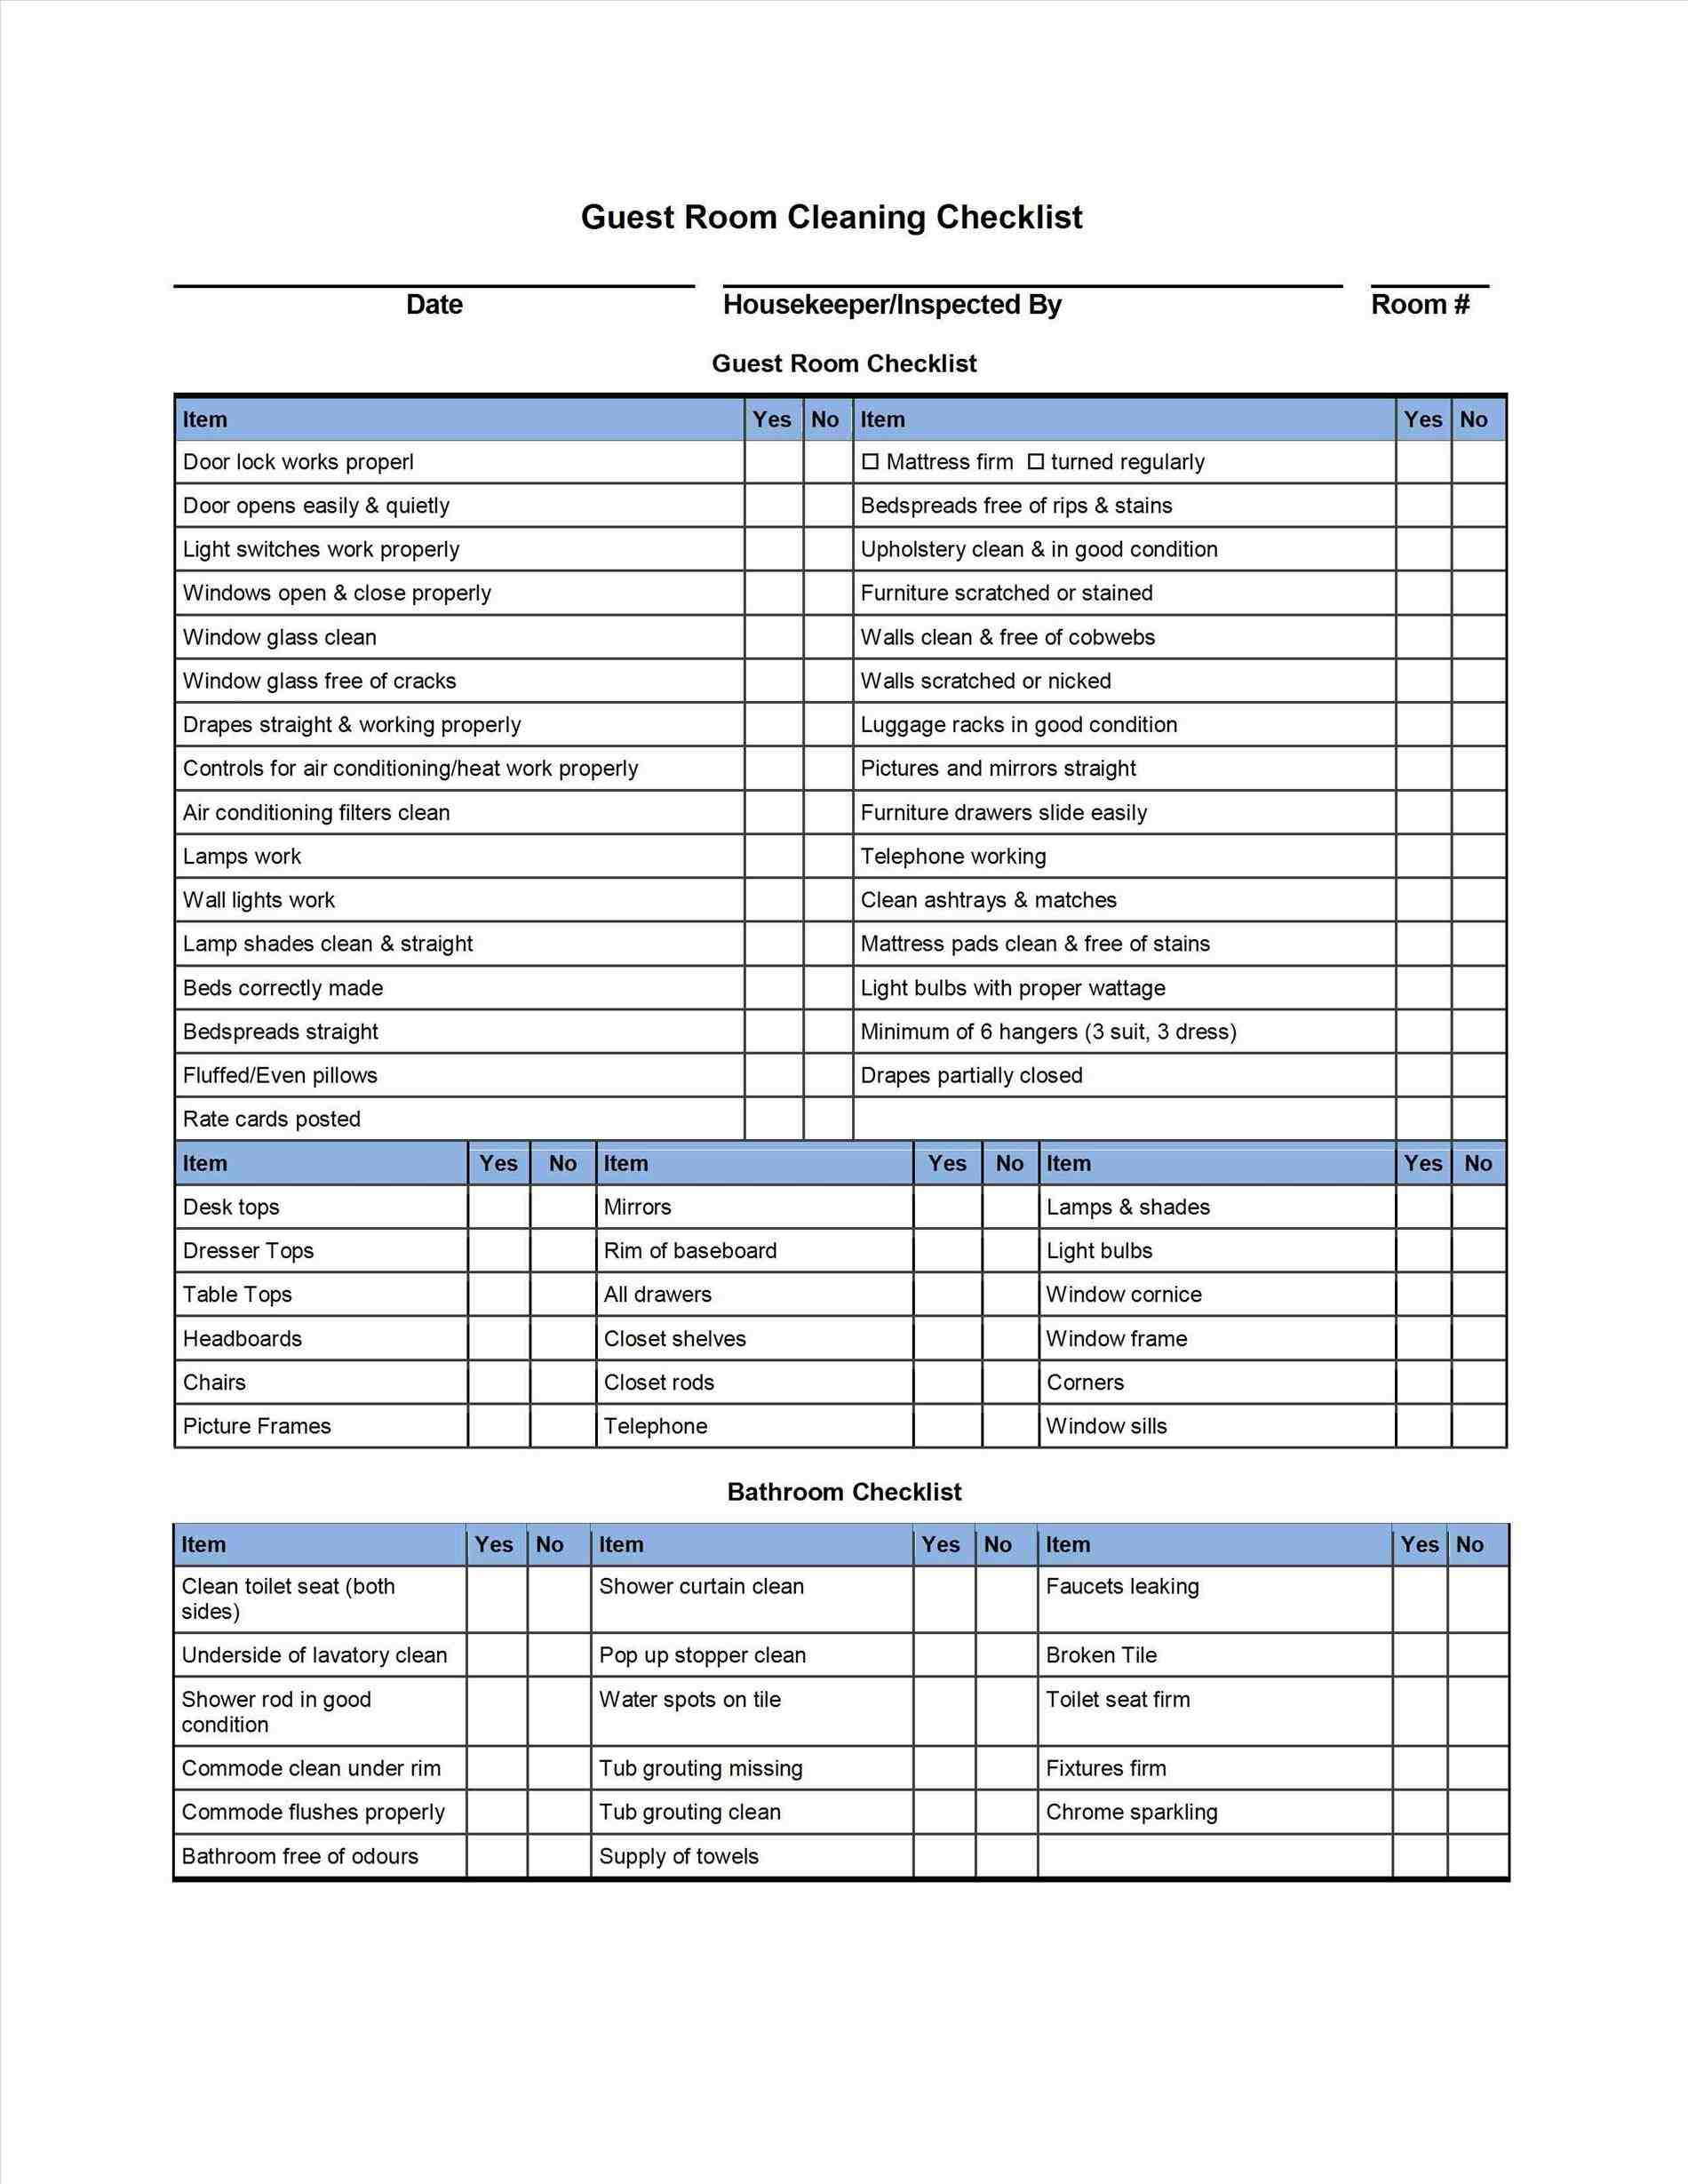 checklist templates external house rhpinterestcom weekly to do list printable template paper trail design rhtheprincipledsocietycom weekly Checklist Template to do